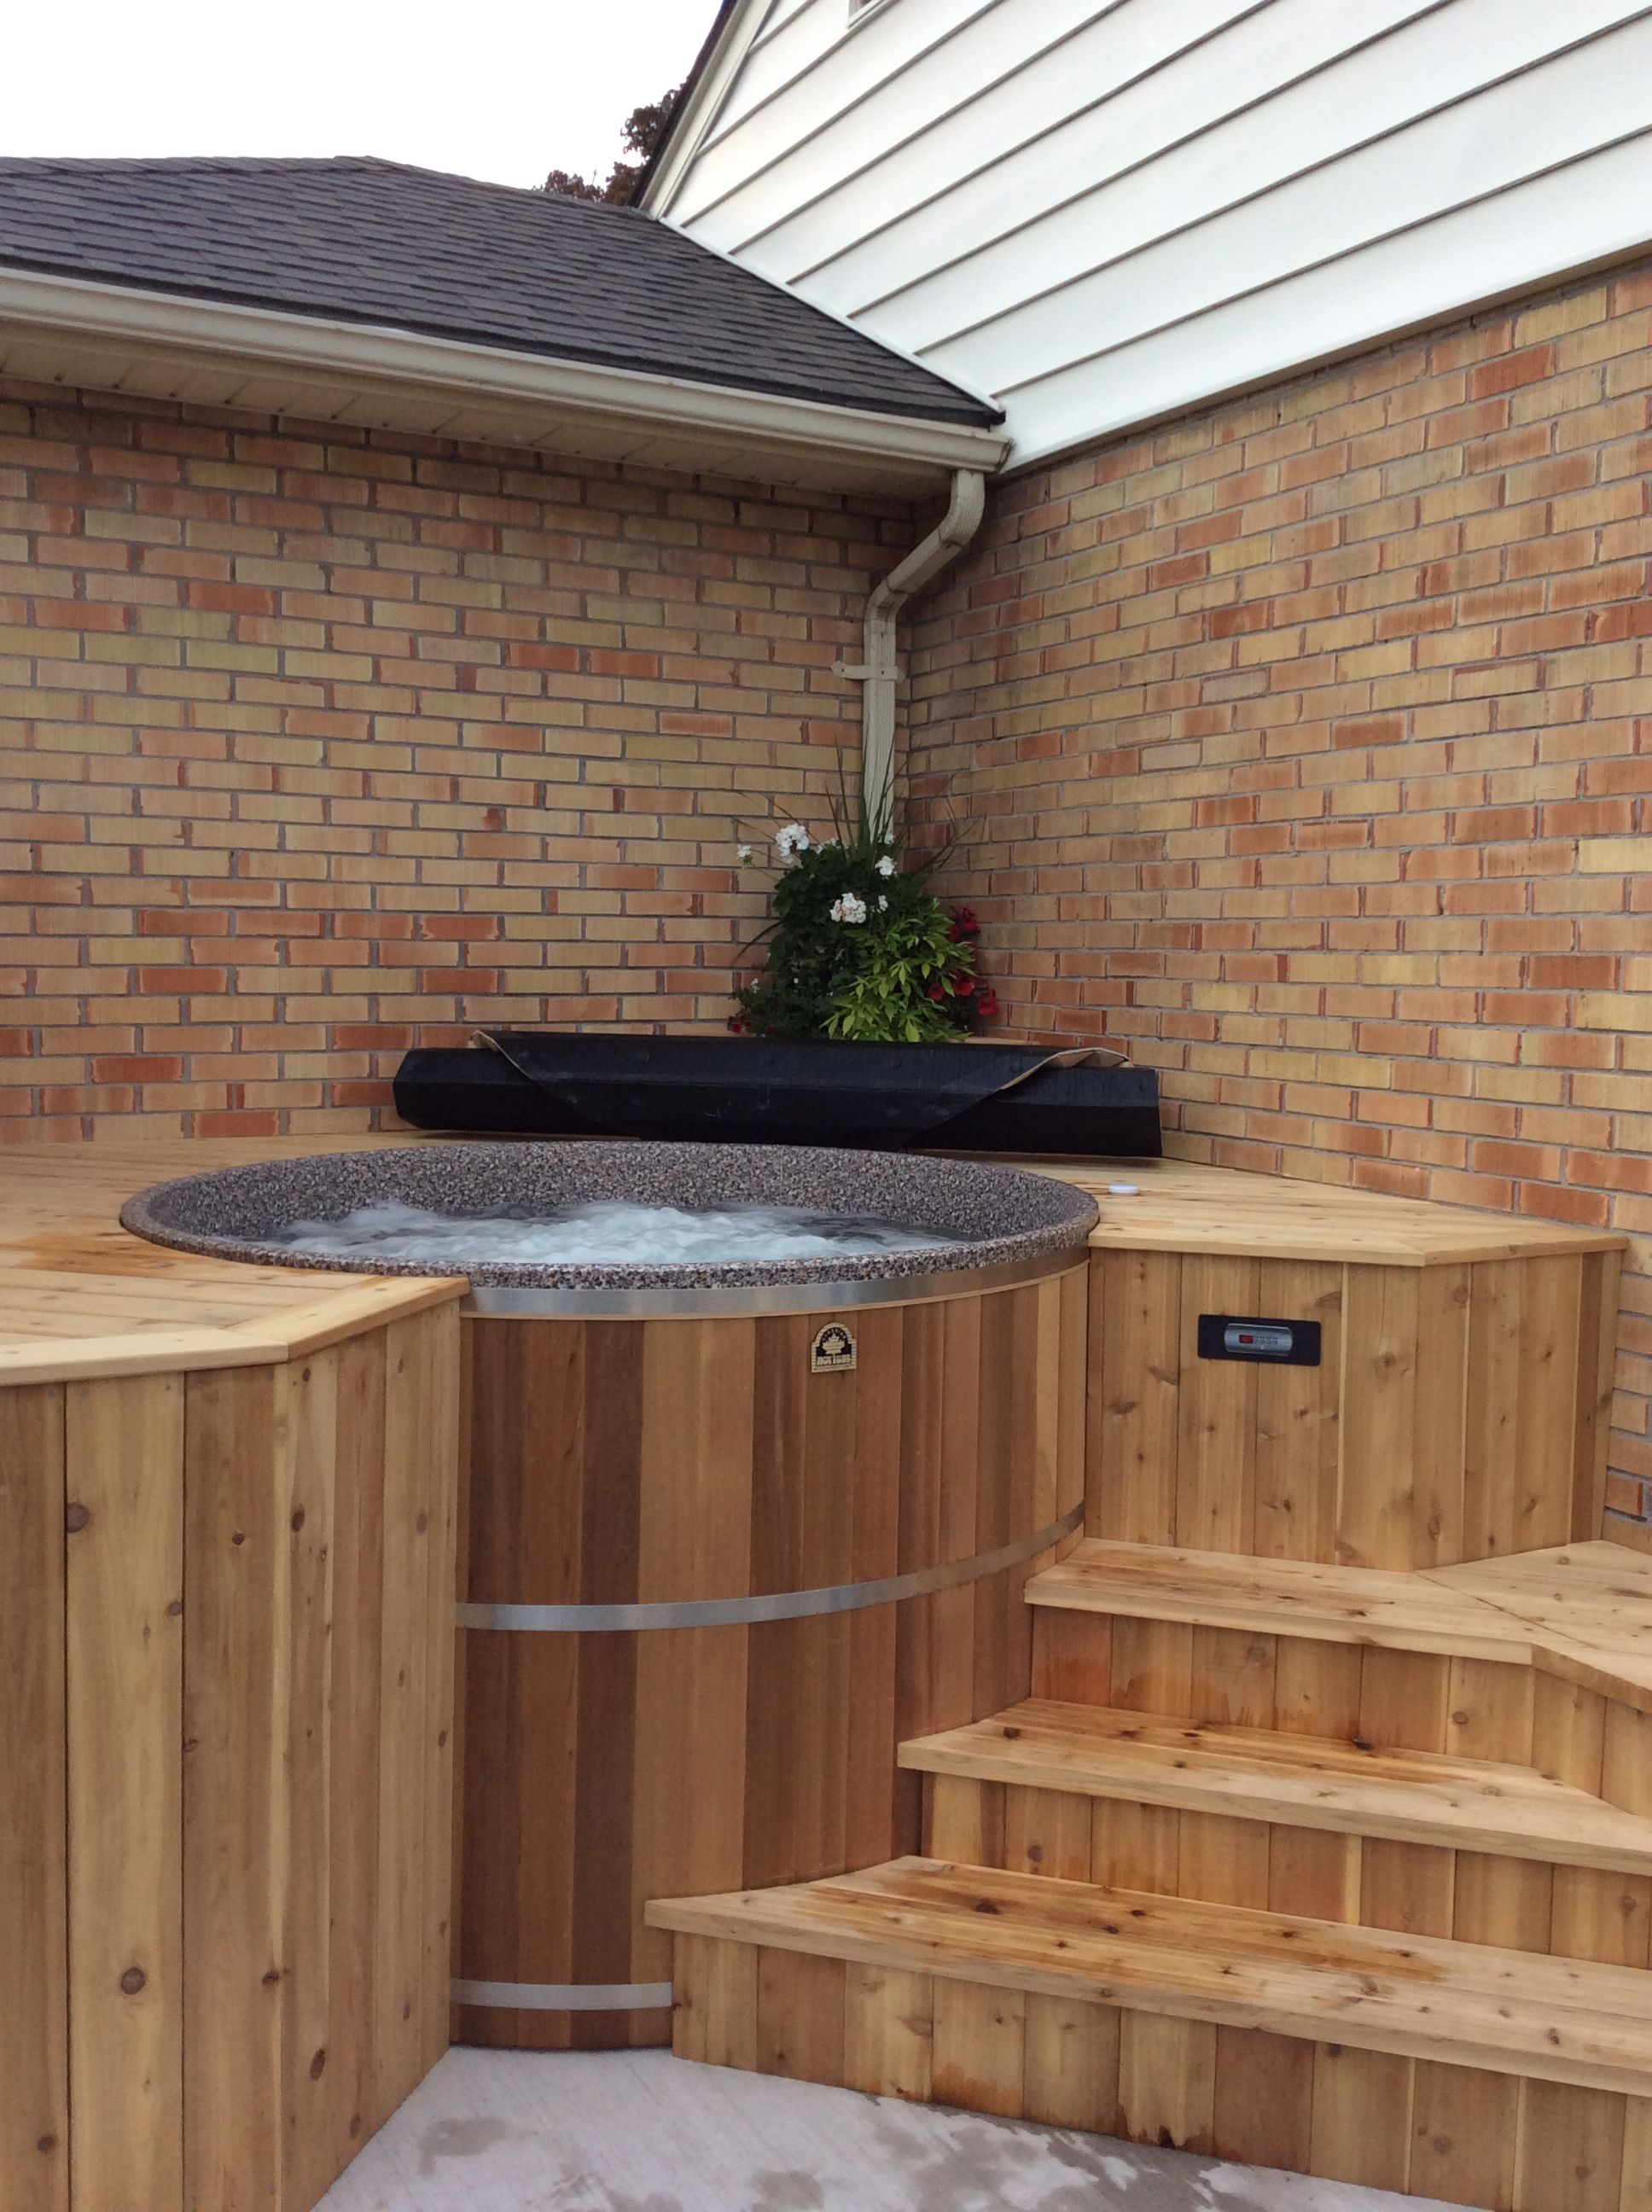 The addition of a cedar hot tub from Canadian hot Tubs